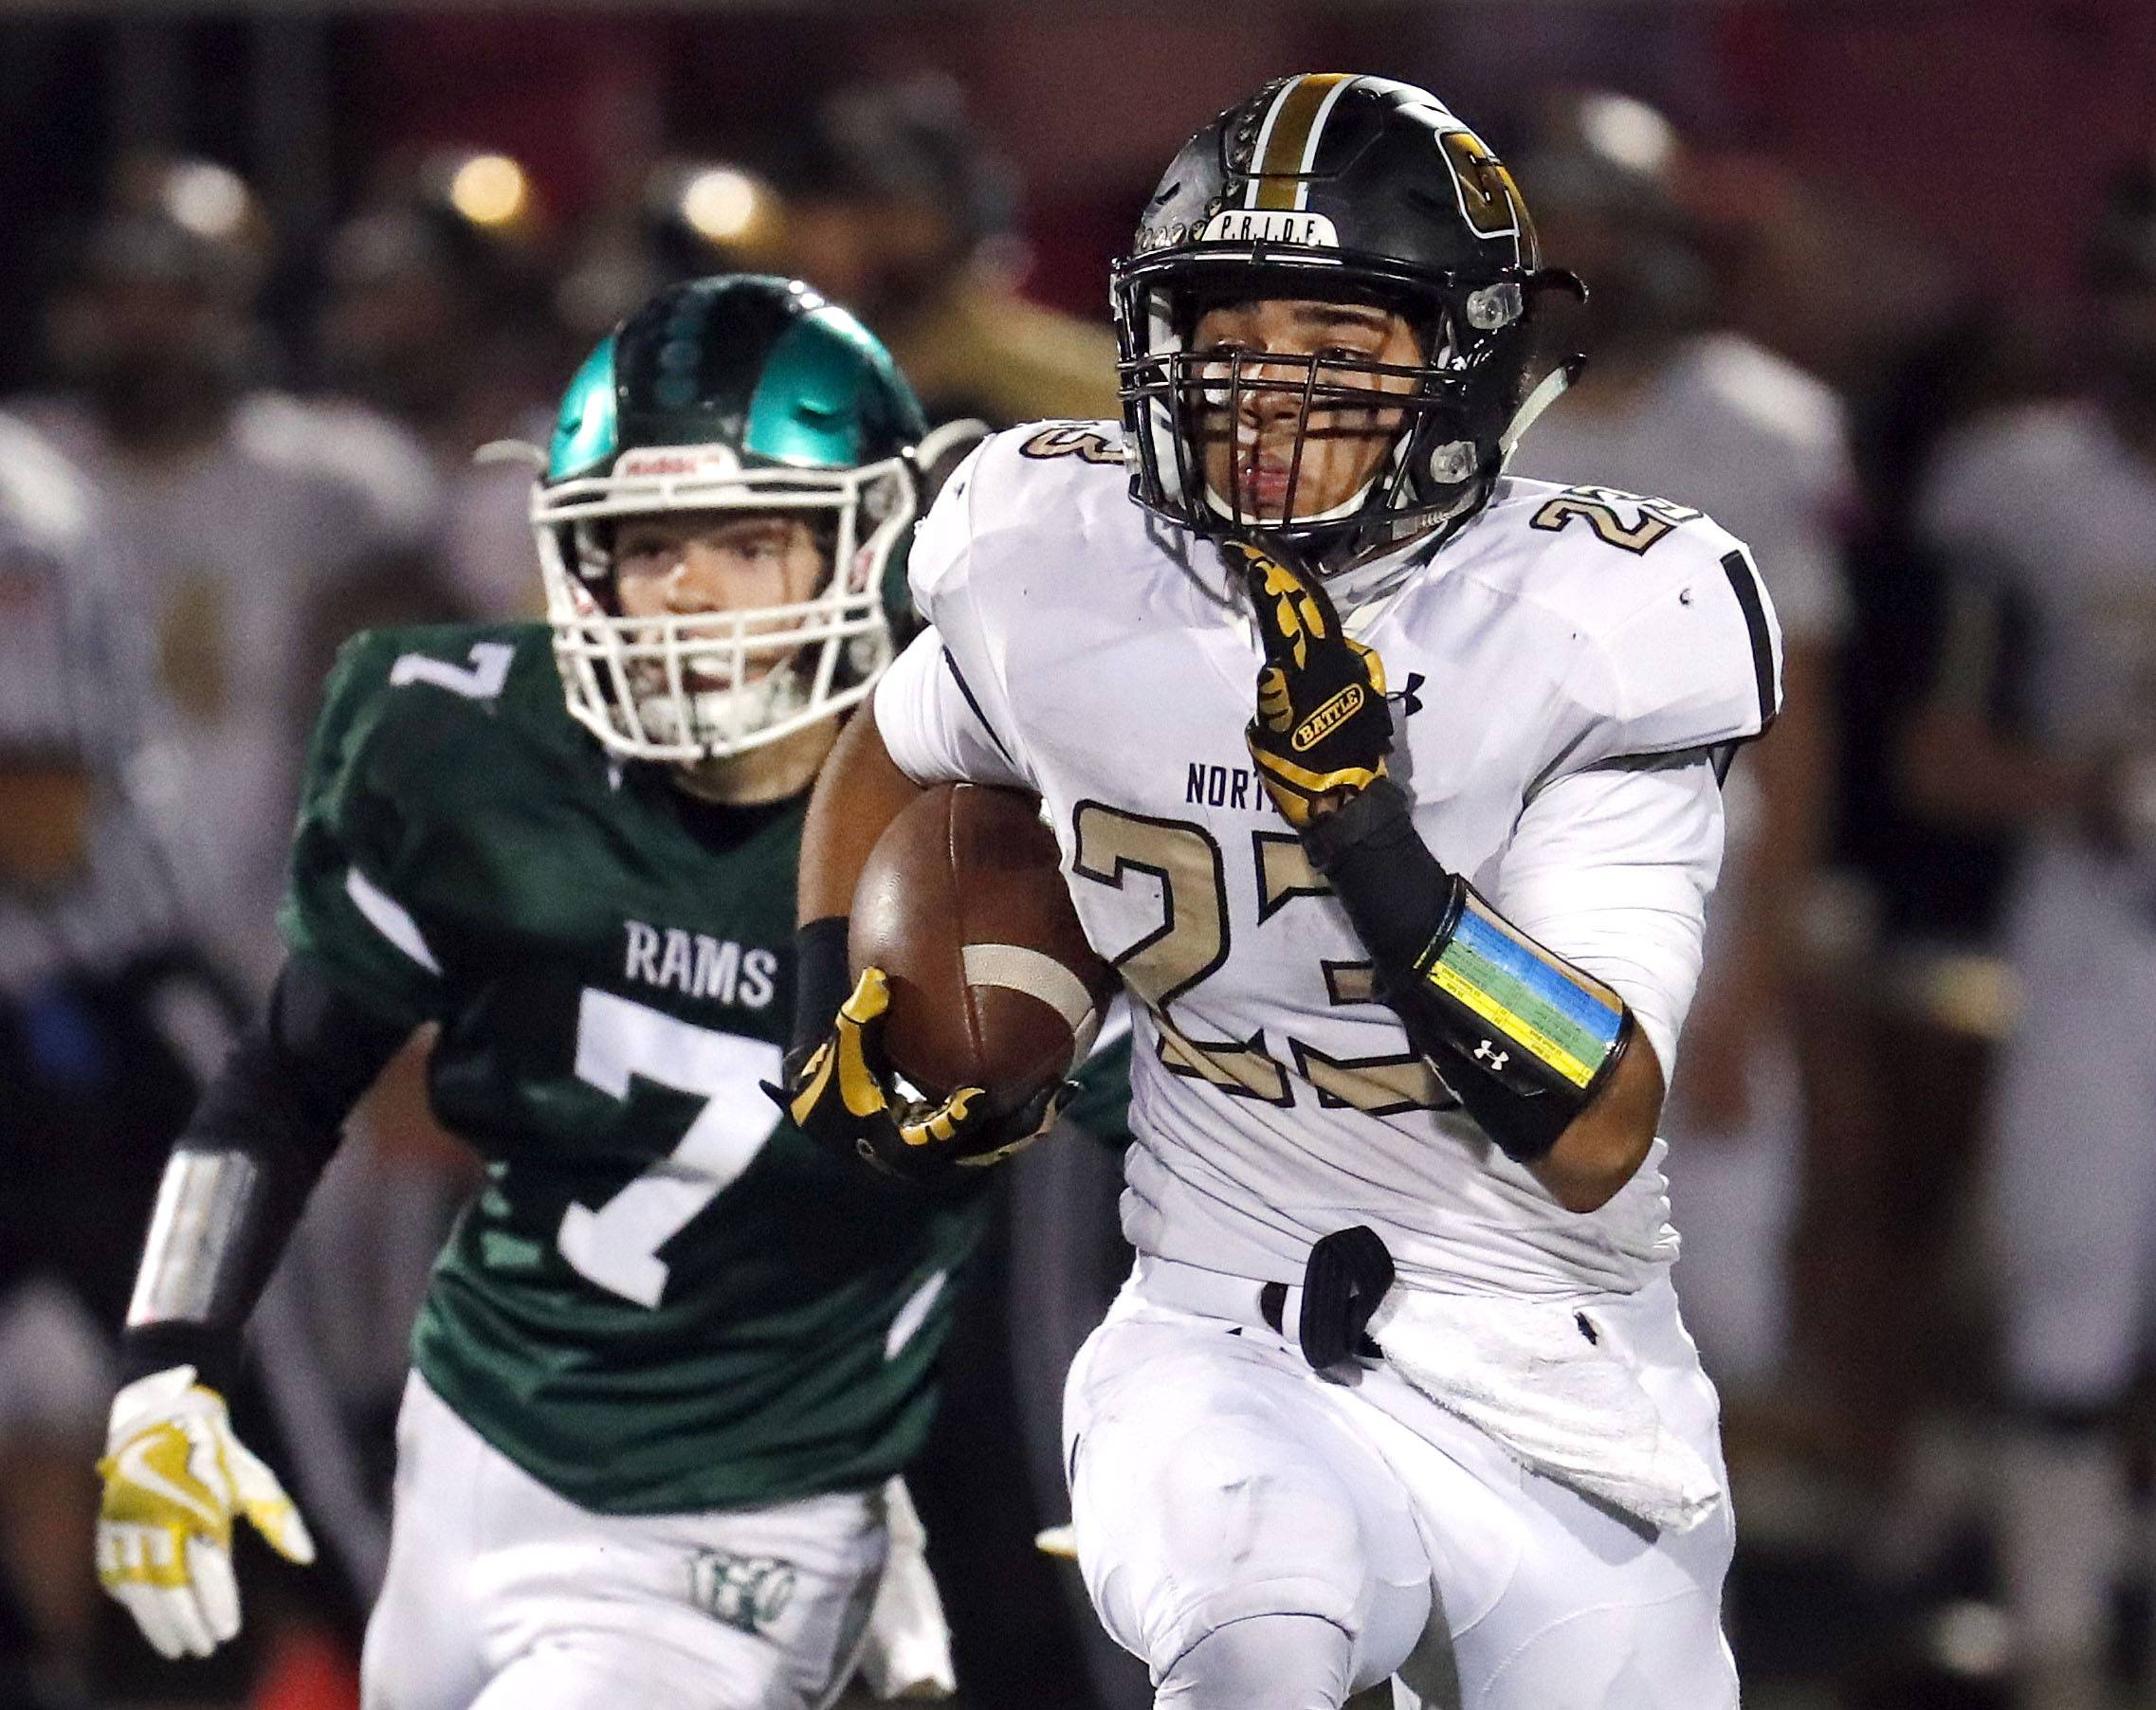 Grayslake North's Jordan Curtis, right, gets past Grayslake Central's Kirk Comerford.